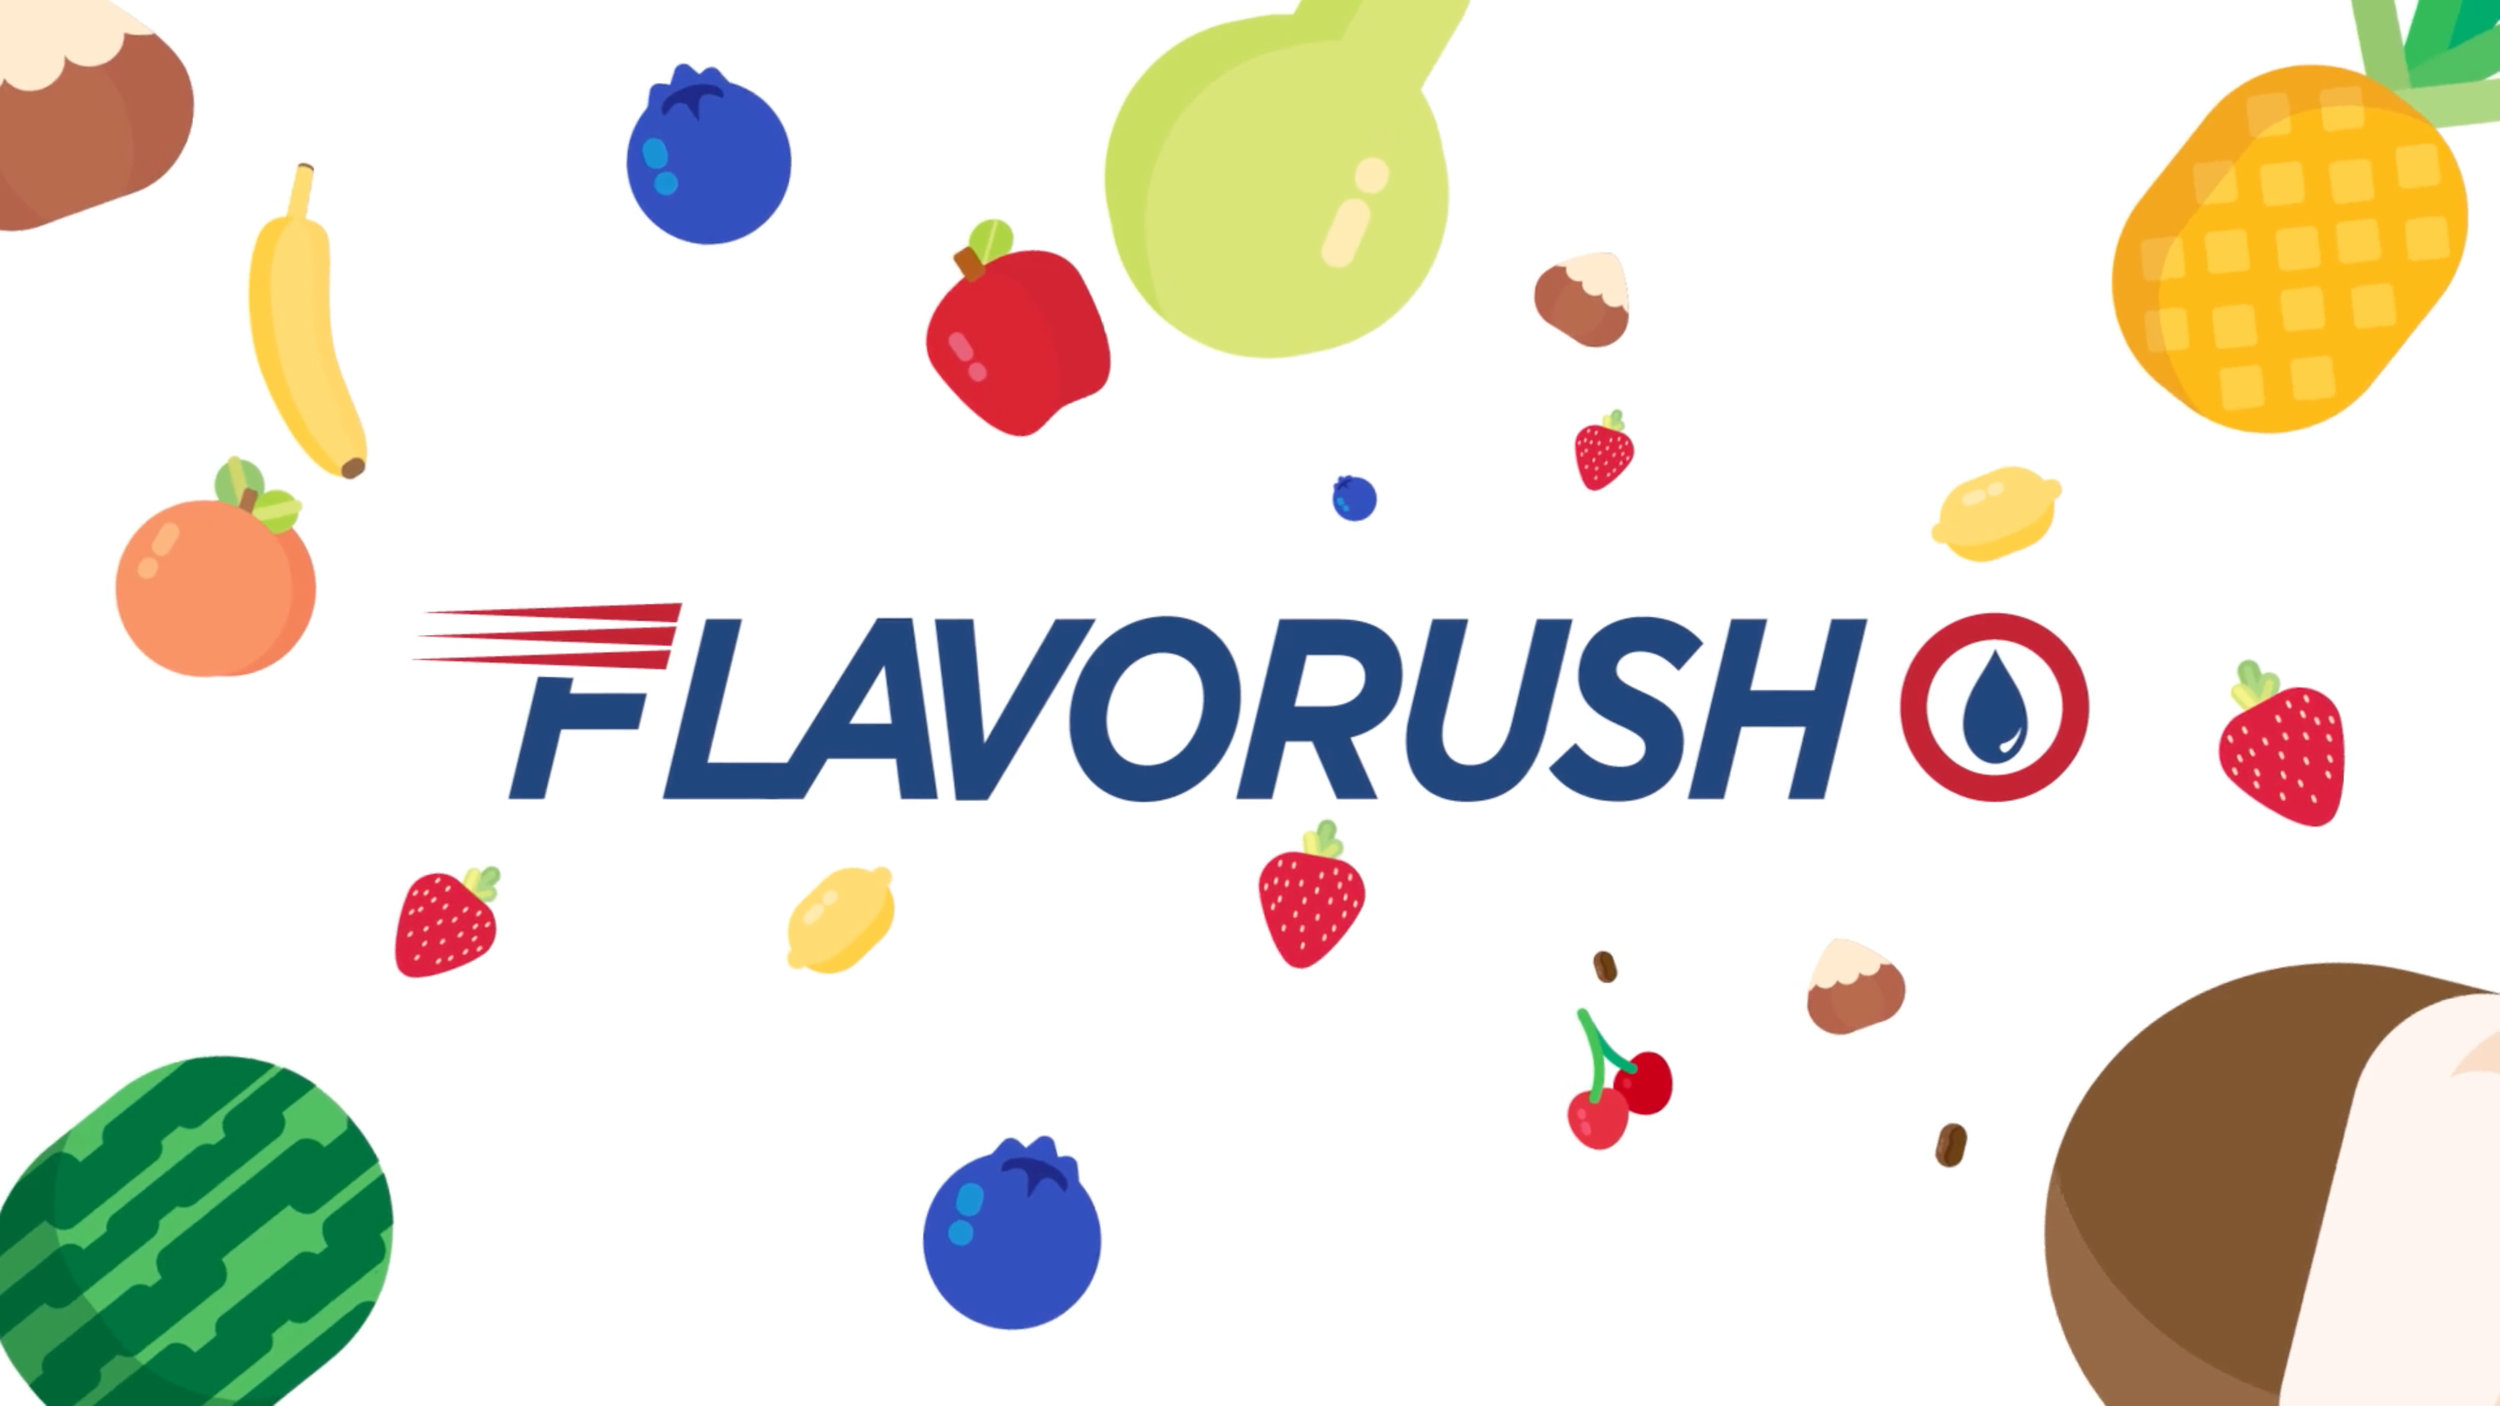 National Flavors: Flavorush - We partnered with the National Flavors team to develop a story to inform their customers on the ins and outs of this new tool in a fun and engaging way.